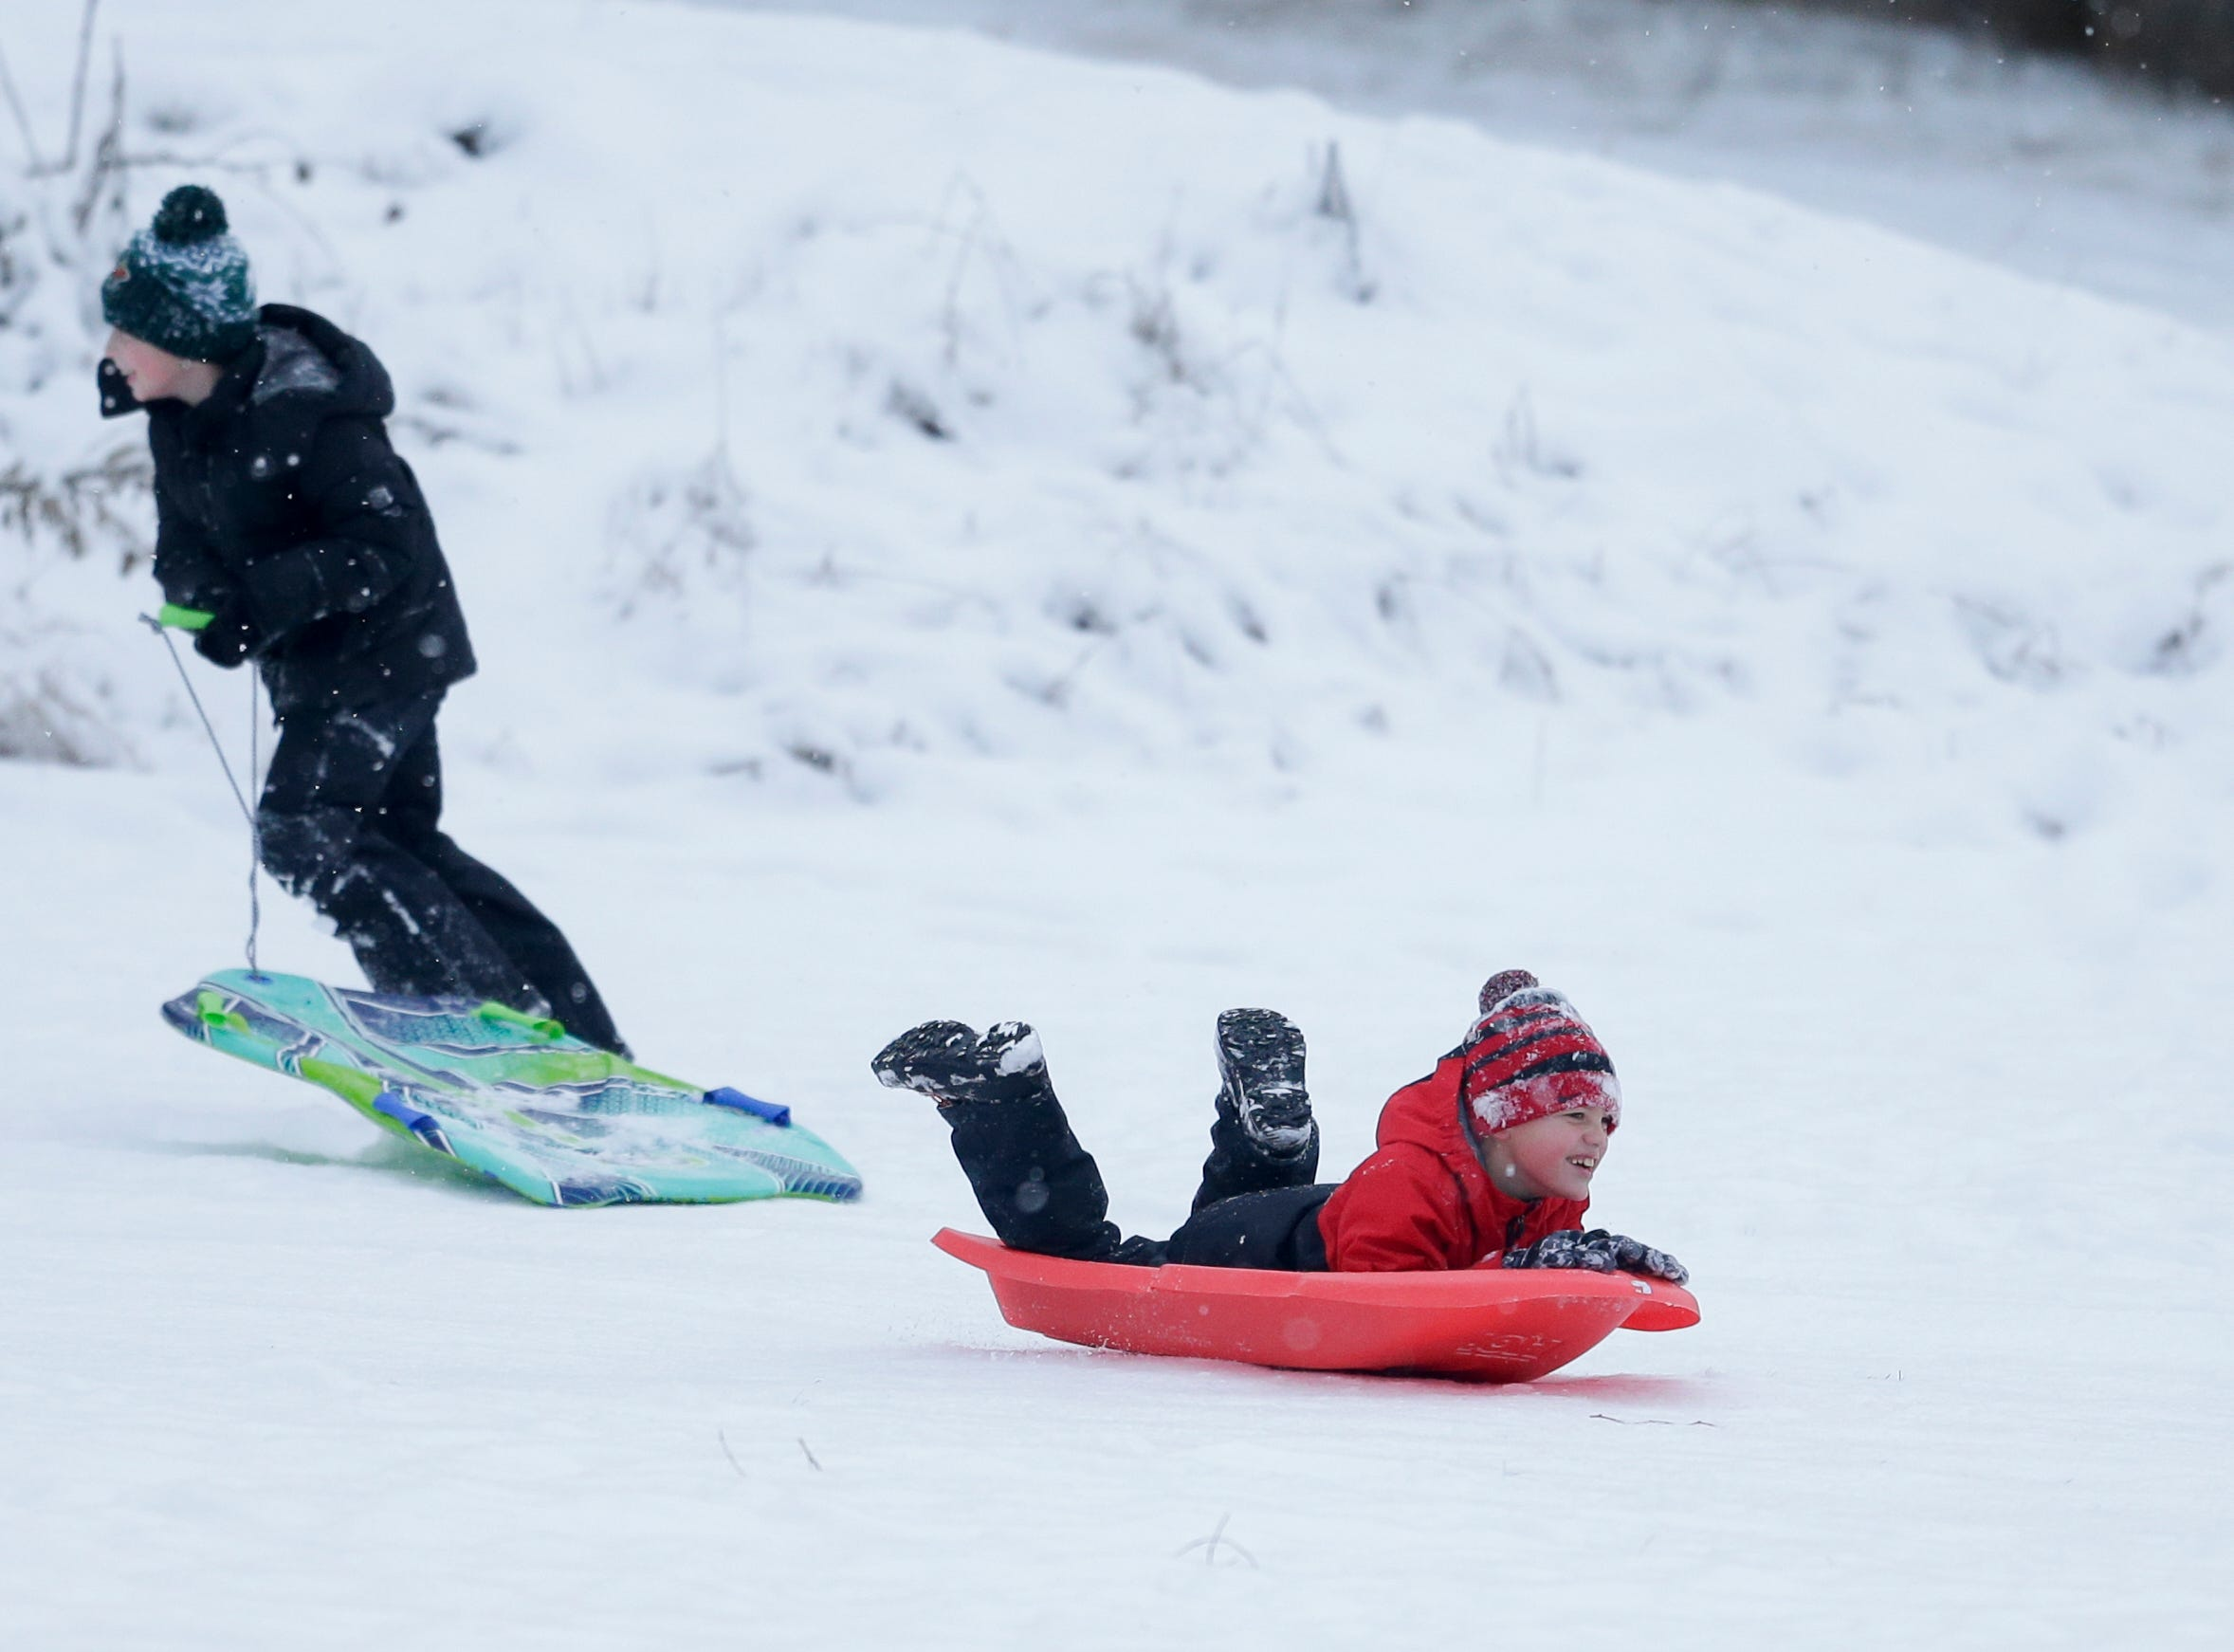 Miles Rice, 7, flies down the sledding hill at Silver Creek Park Wednesday, January 2, 2019, in Manitowoc, Wis. Joshua Clark/USA TODAY NETWORK-Wisconsin